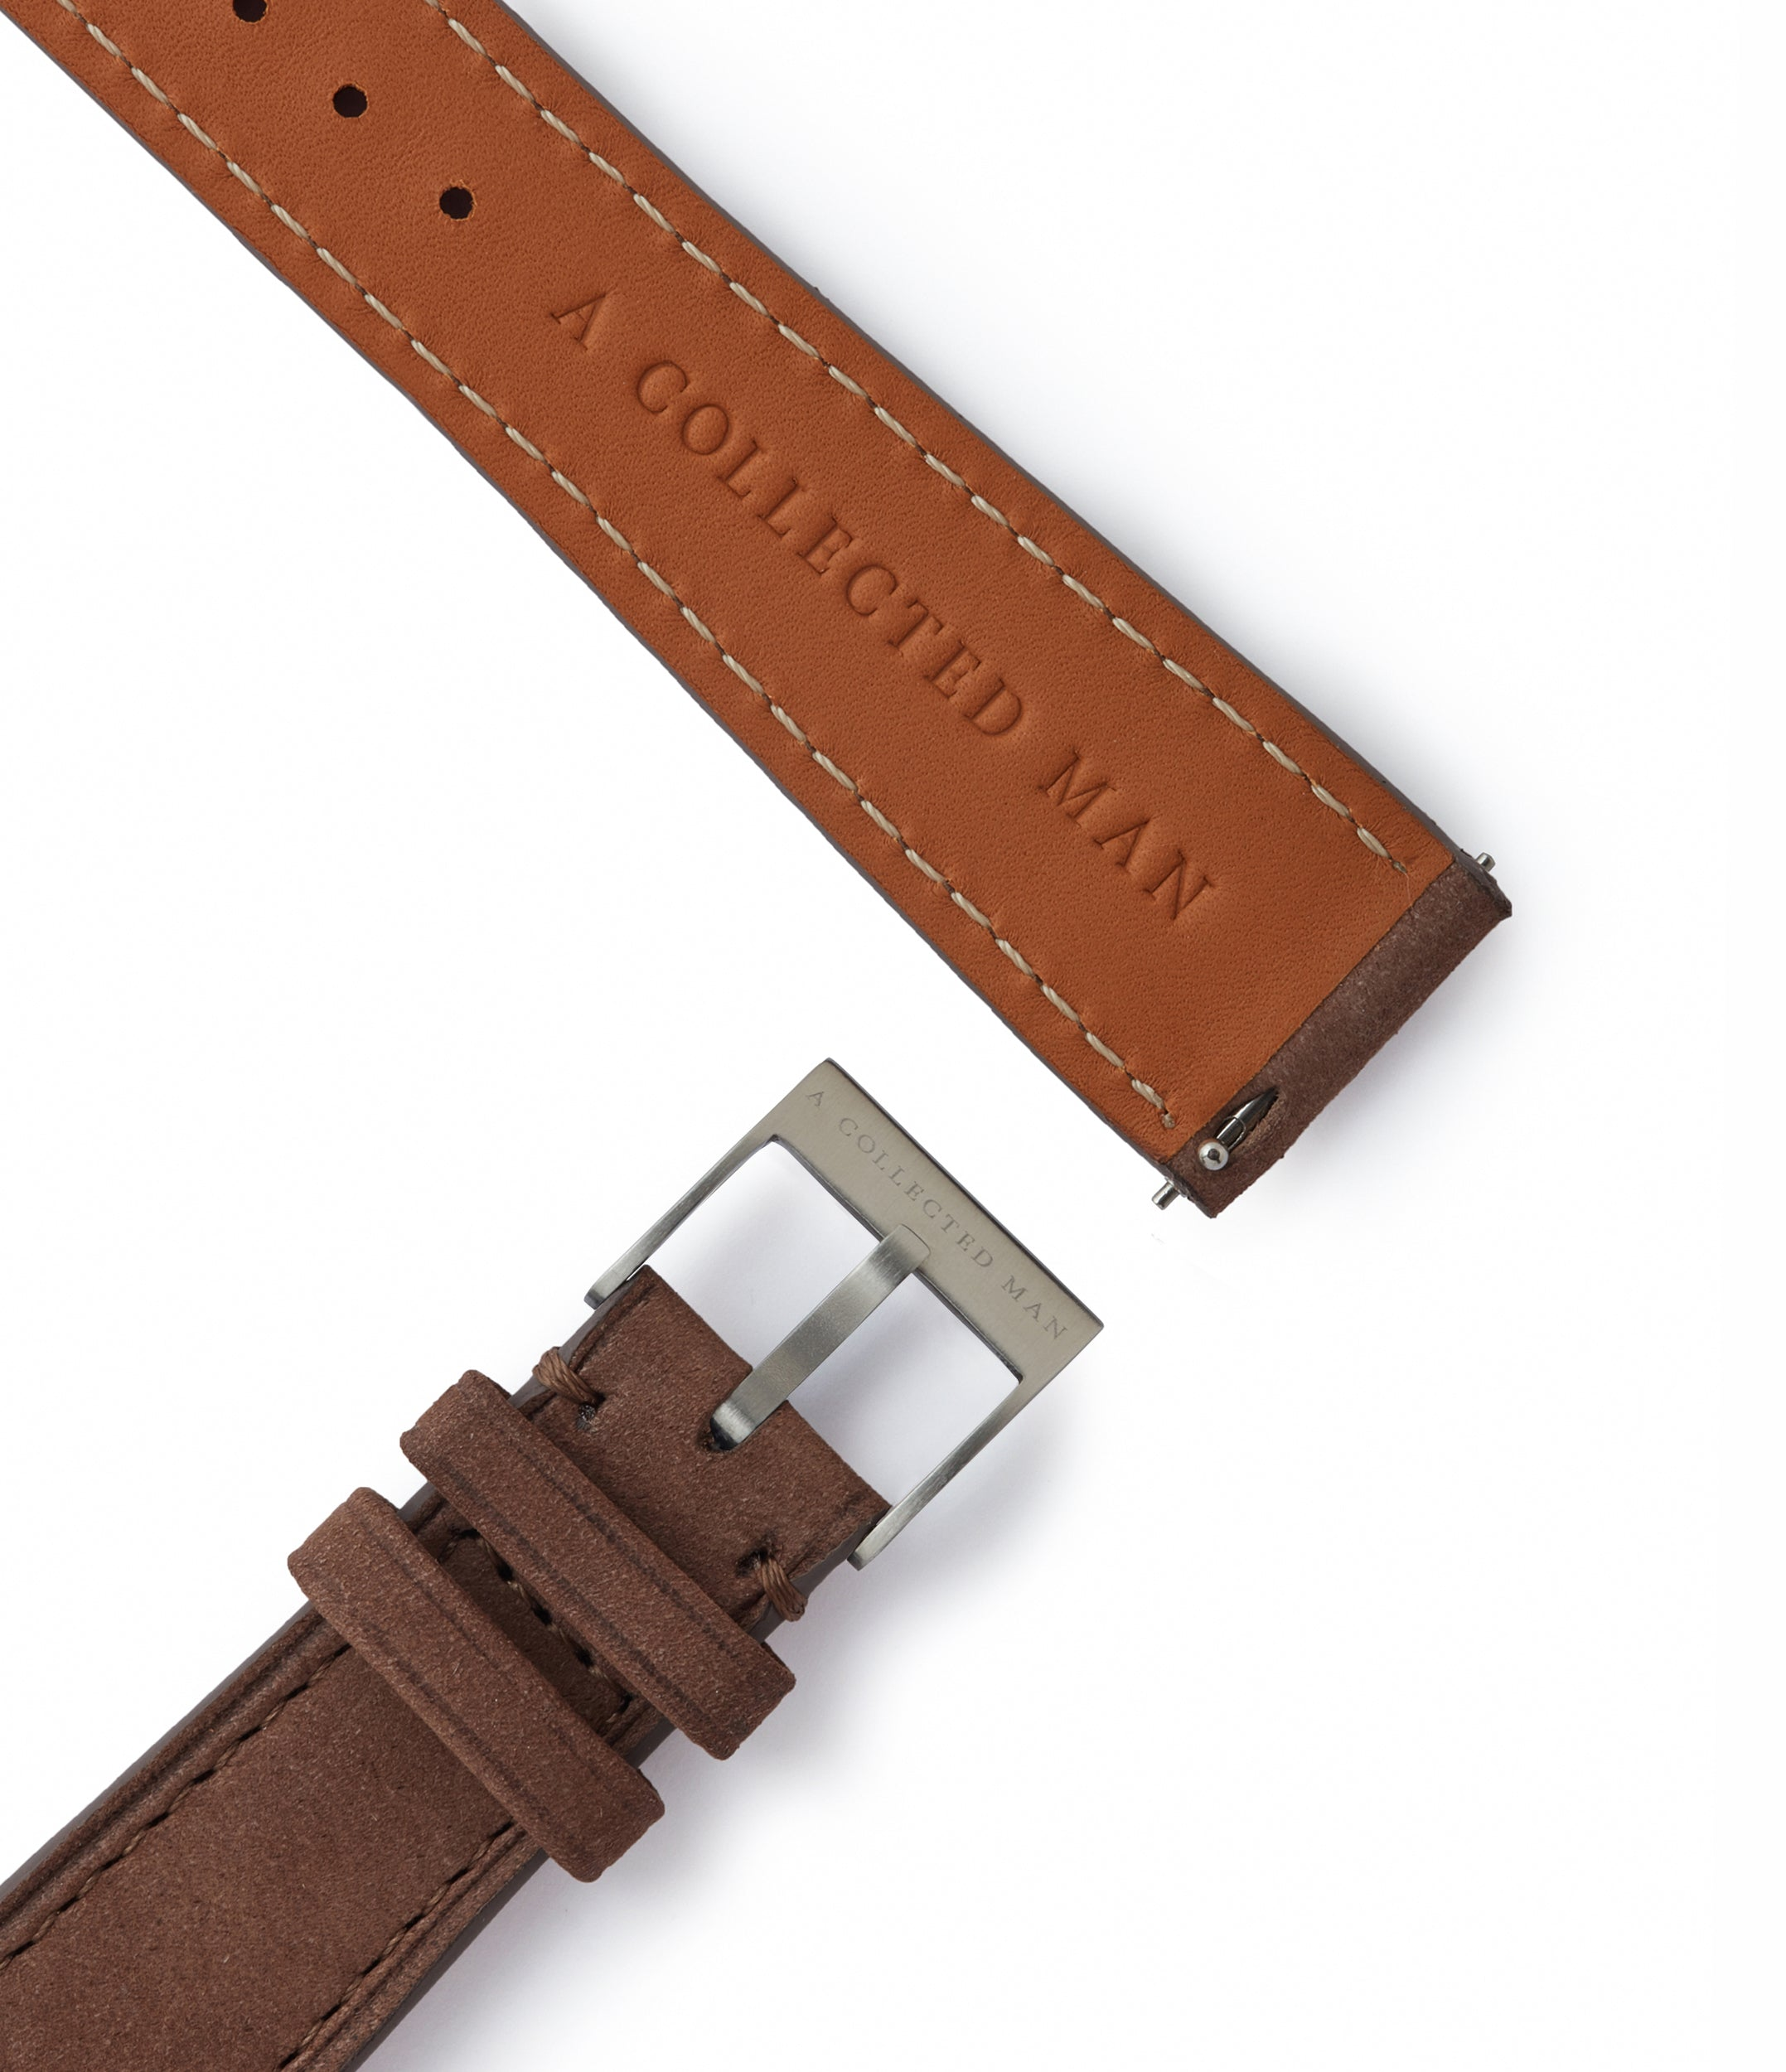 smoke brown leather nubuck watch strap quick-release springbars Geneva Molequin for sale order online at A Collected Man London